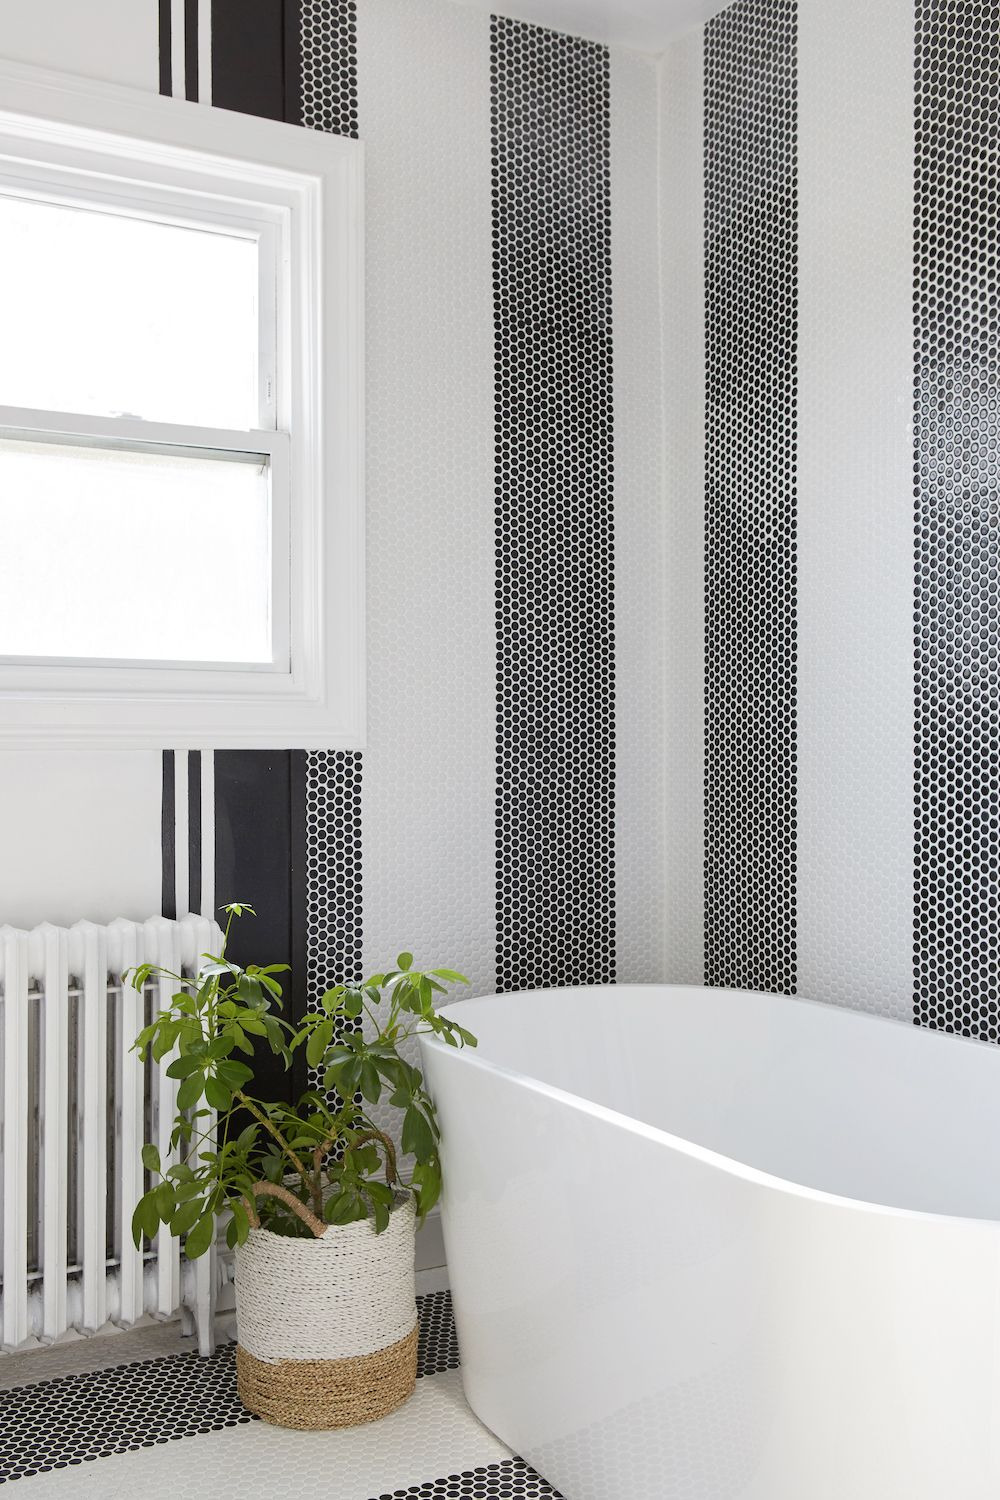 bathroom tile ideas leanne paris 078 2